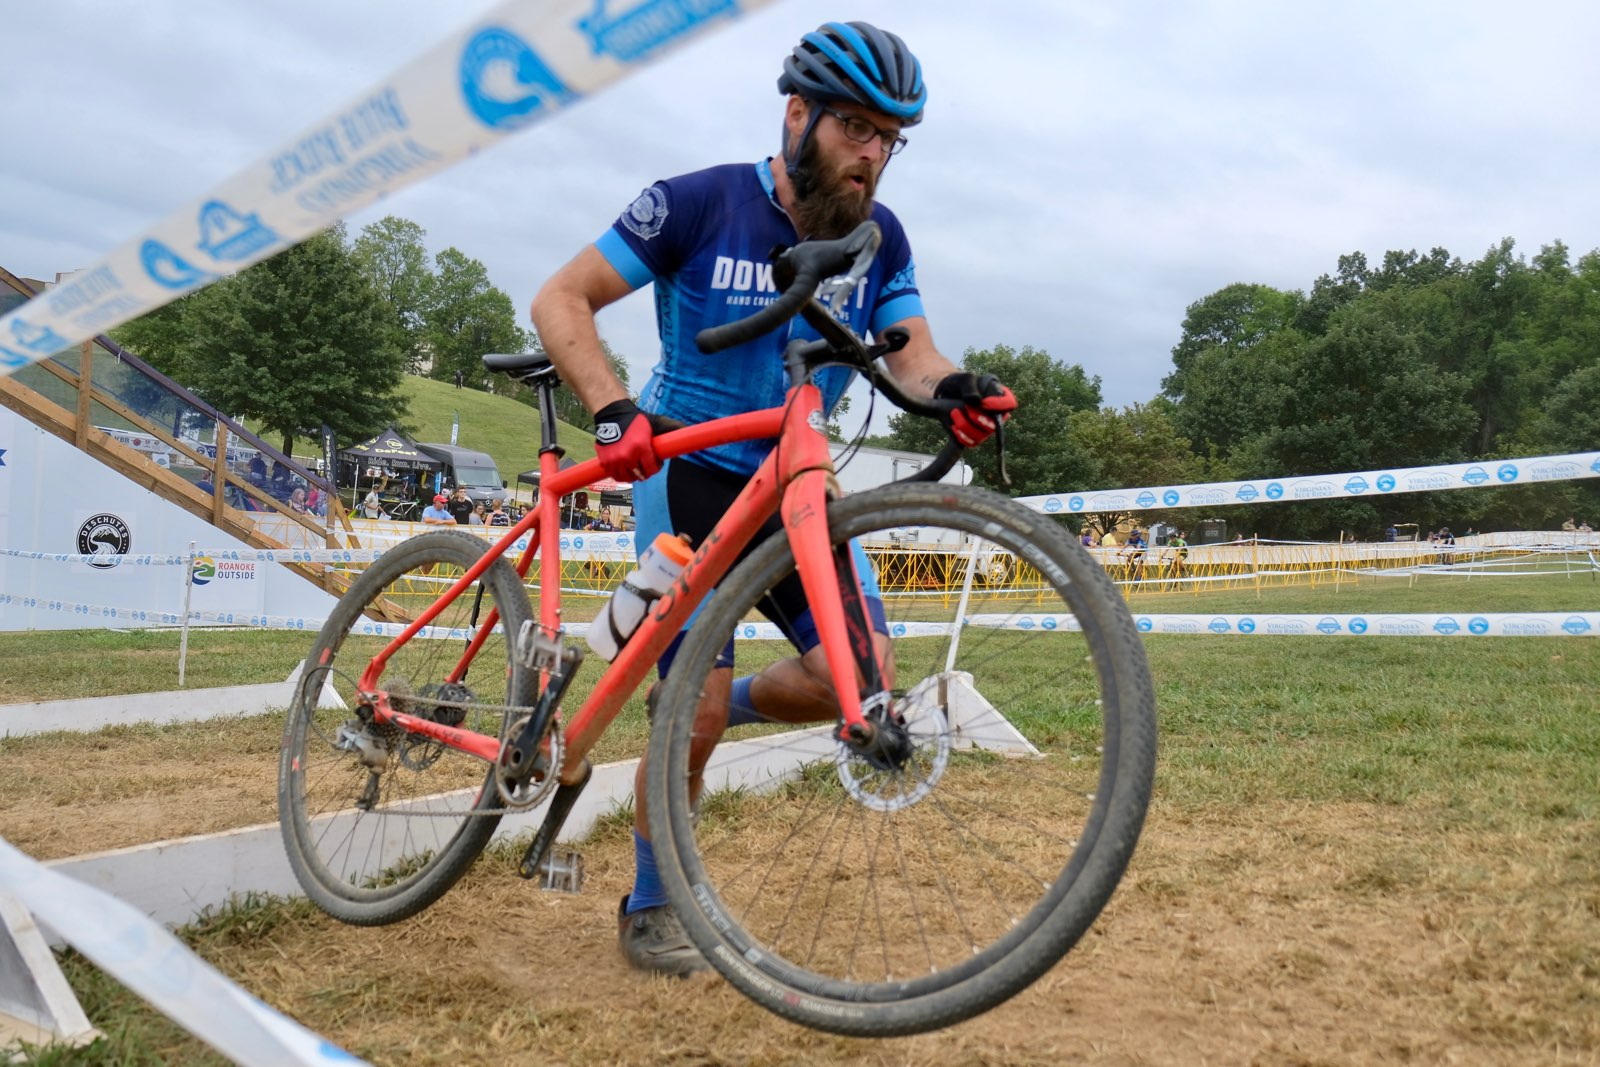 competitive cyclist carrying his bike on cyclocross course